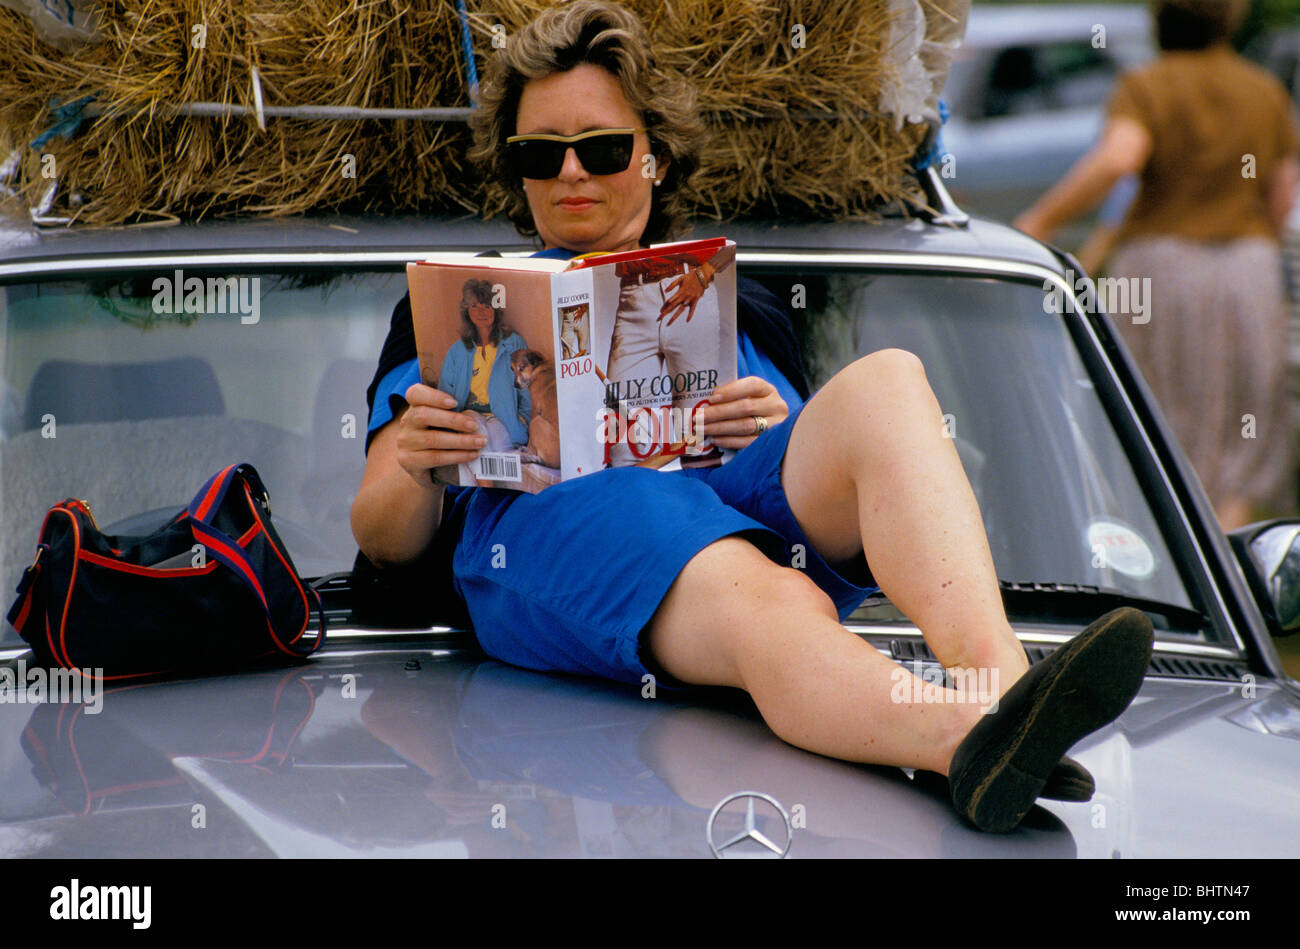 A woman sitting on the bonnet of a Mercedes Car reading a Jilly Cooper polo book during a polo match in the Cotswolds - Stock Image